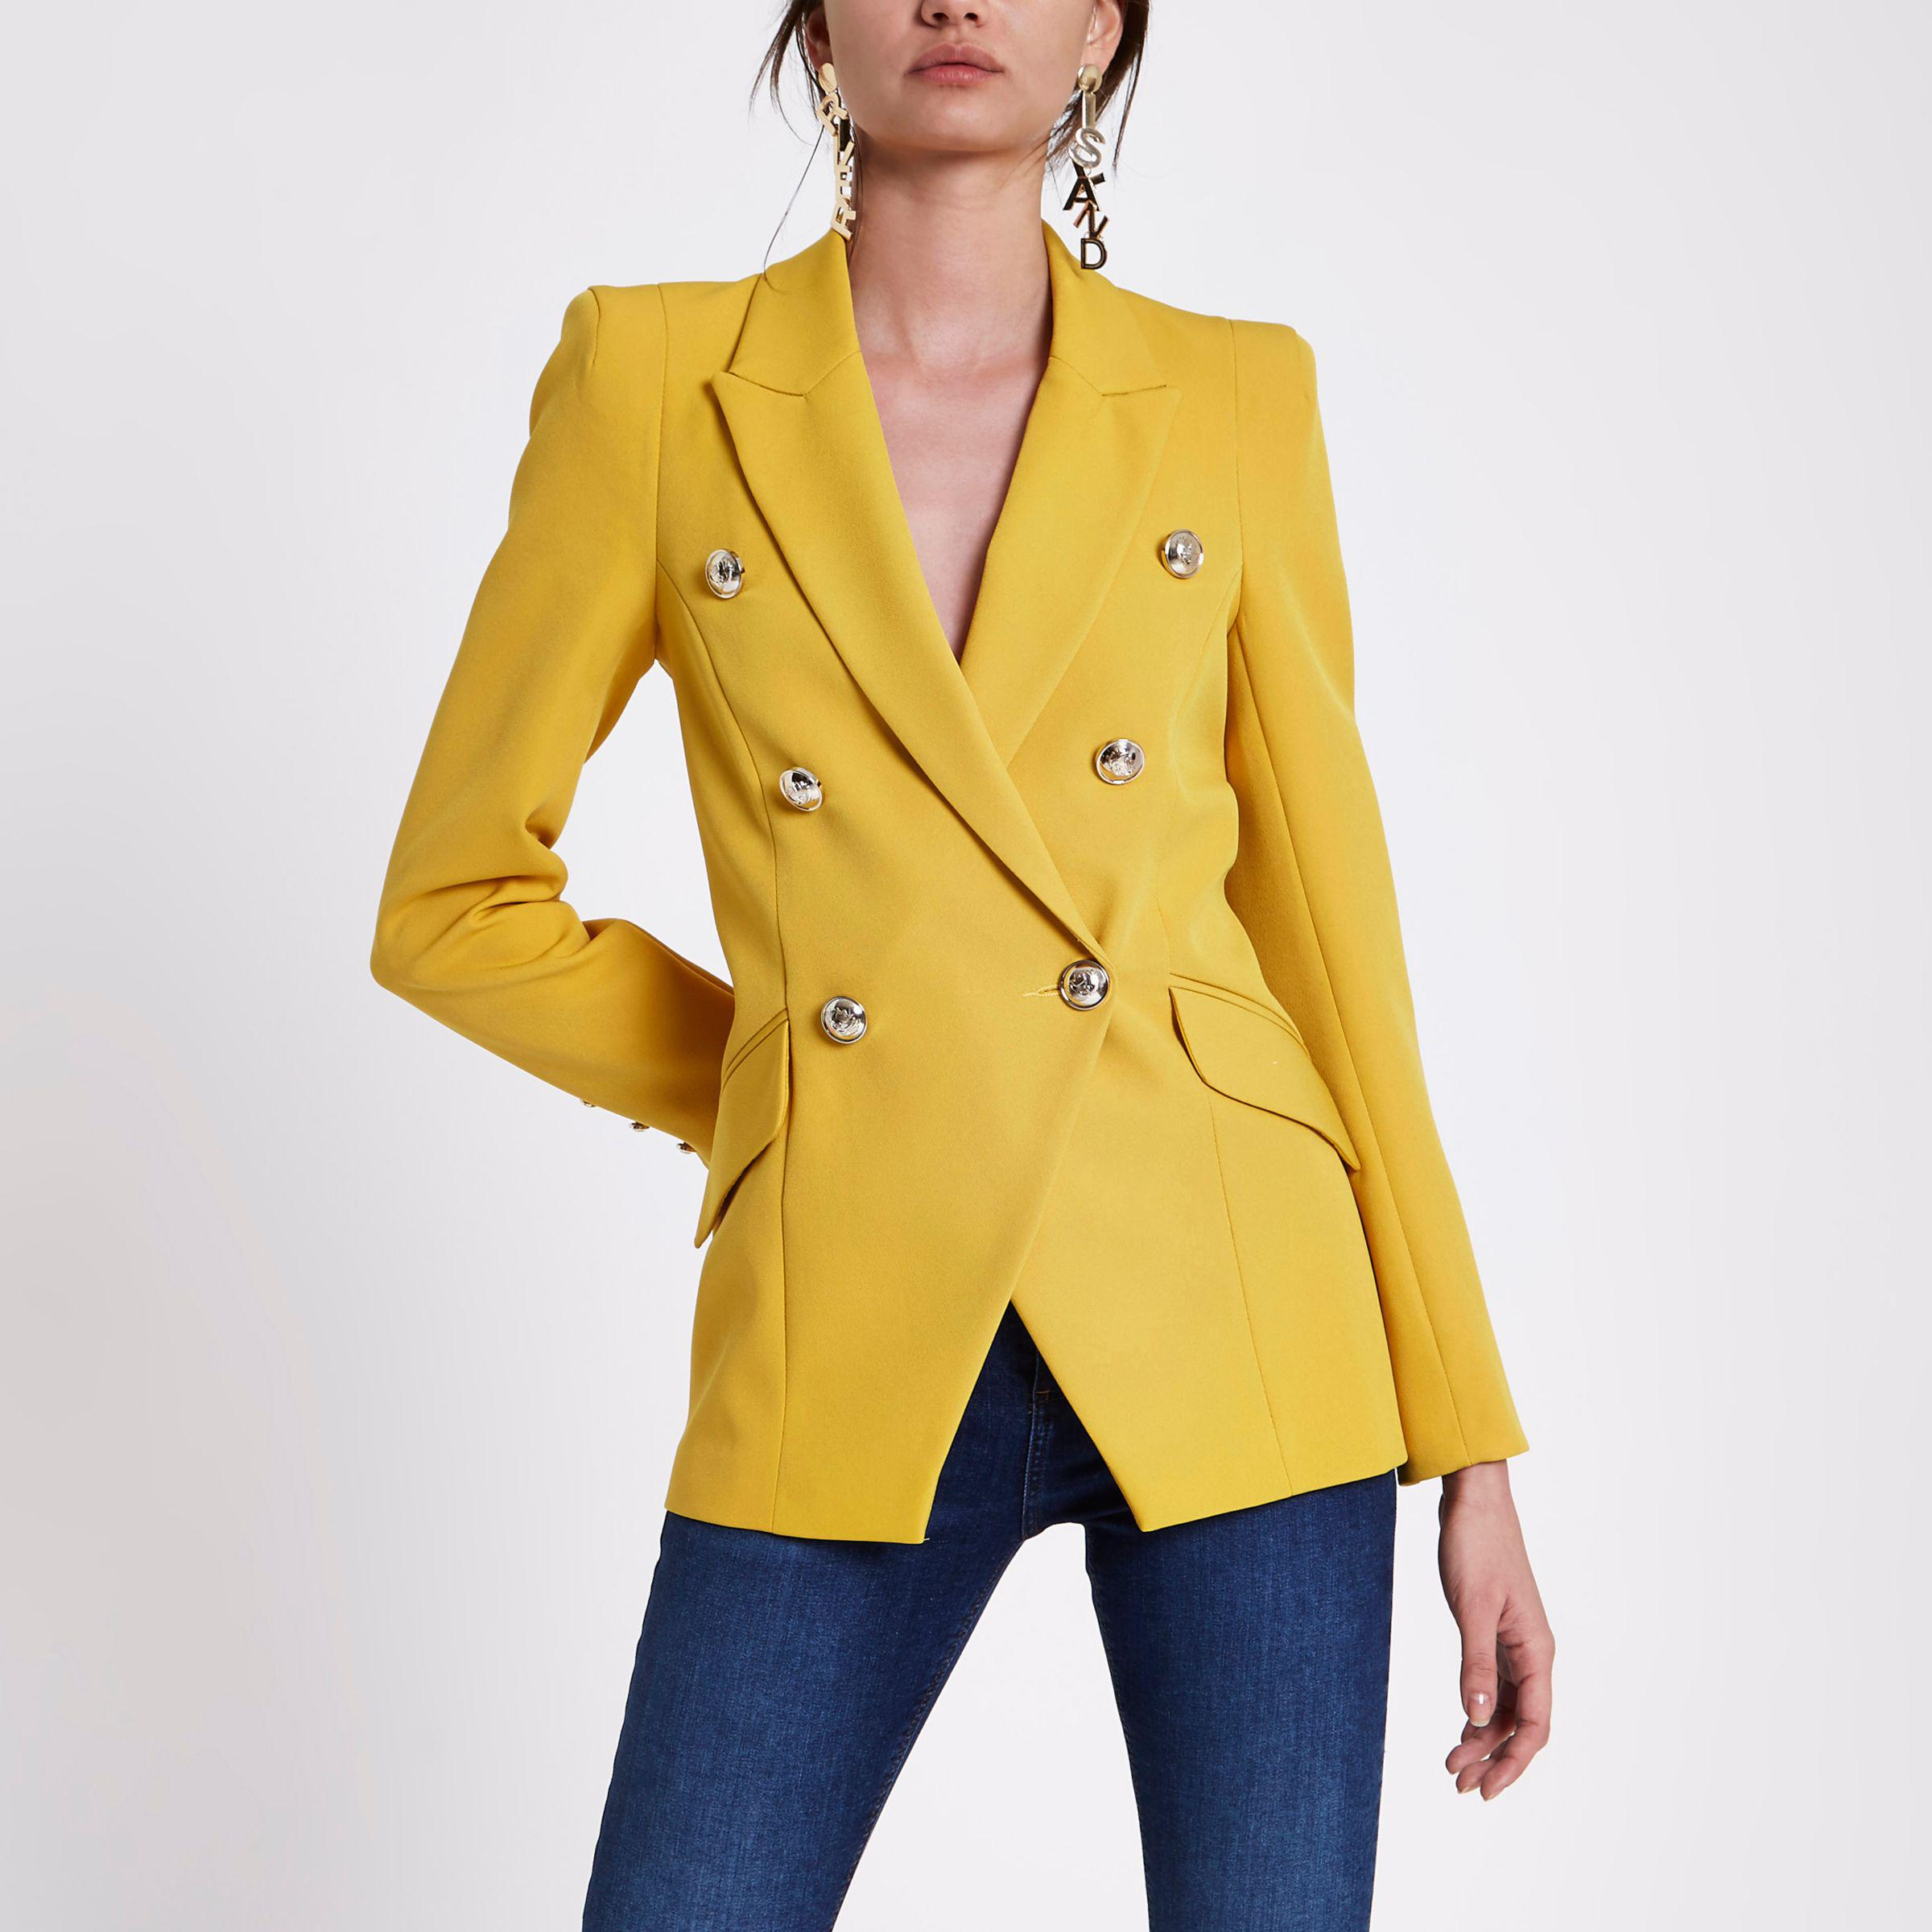 0b976d853e1 River Island Double Breasted Tux Jacket in Yellow - Lyst